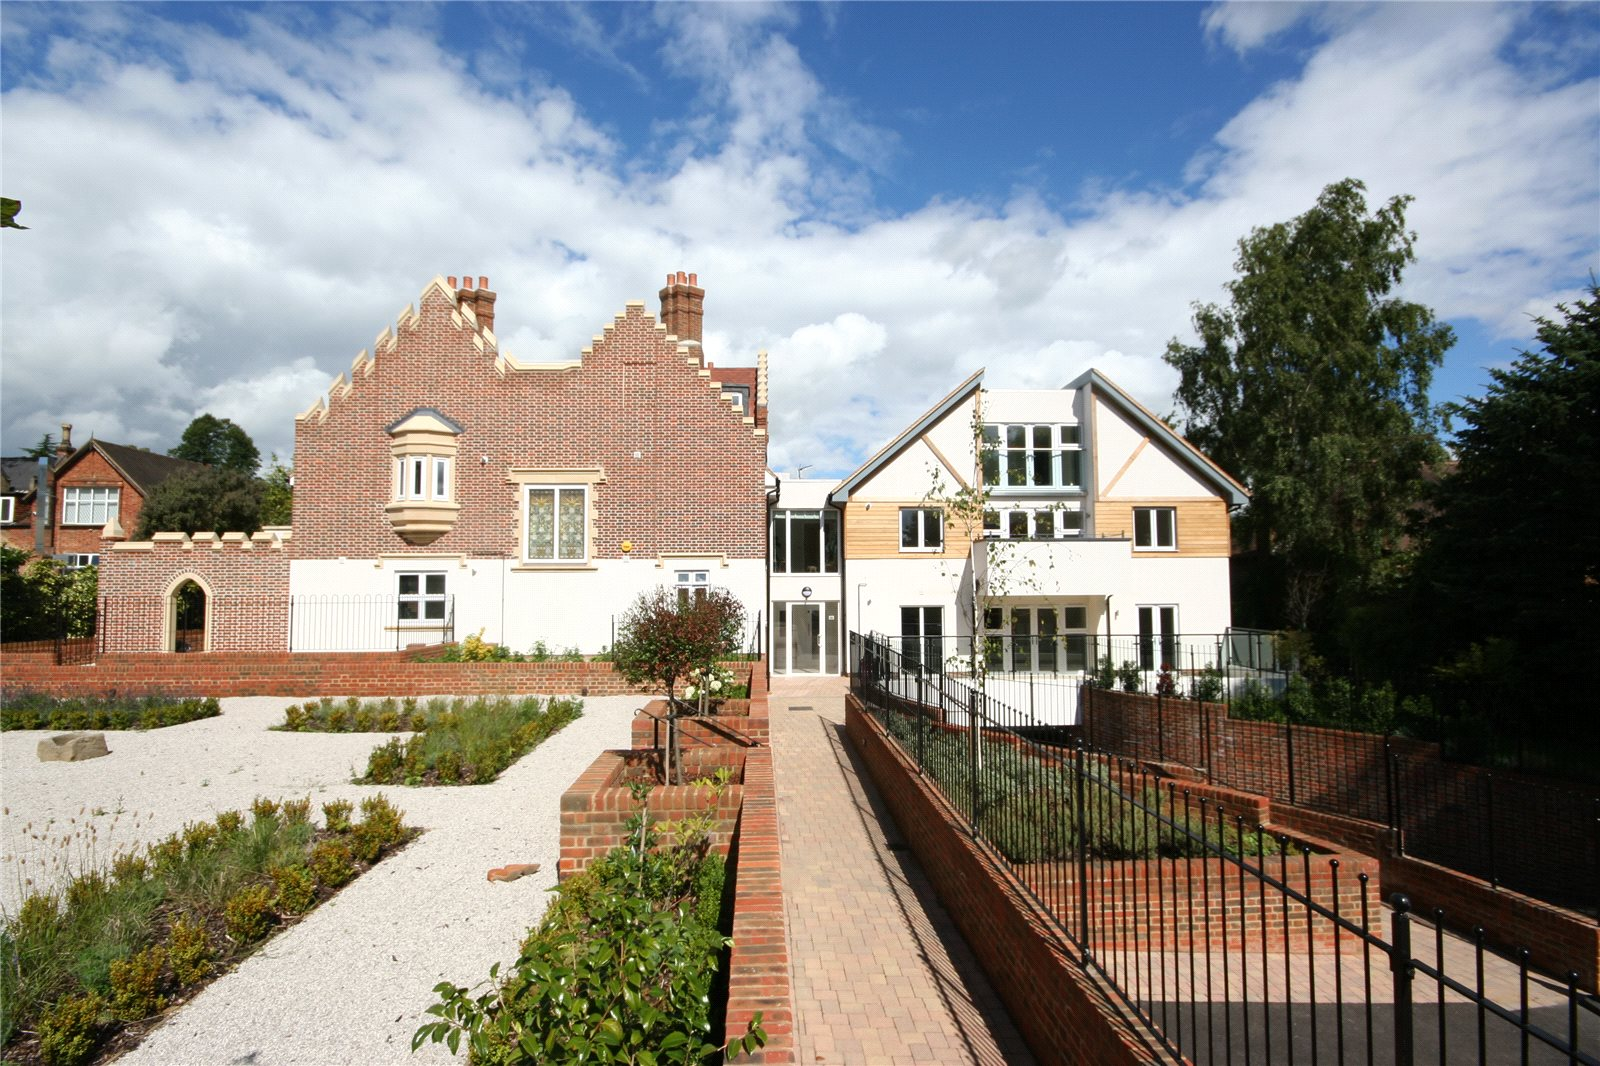 集合住宅 のために 売買 アット Scholars Place, South Park Drive, Gerrards Cross, Buckinghamshire, SL9 Gerrards Cross, イギリス